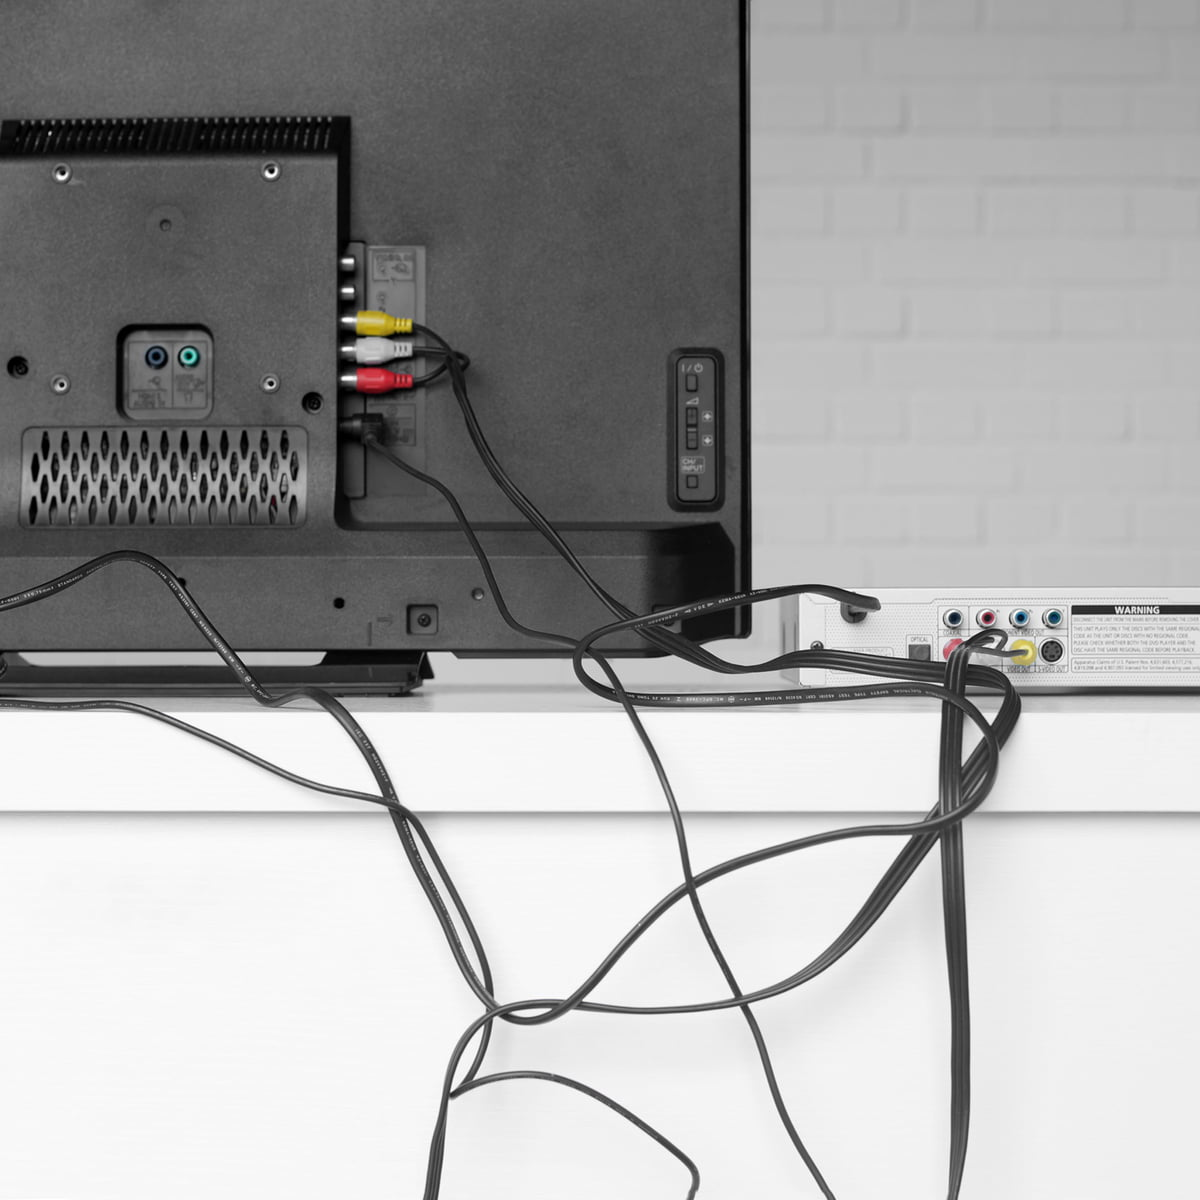 Soba Cable Management Tool By Bluelounge Uk Wiring Colours Grey Black